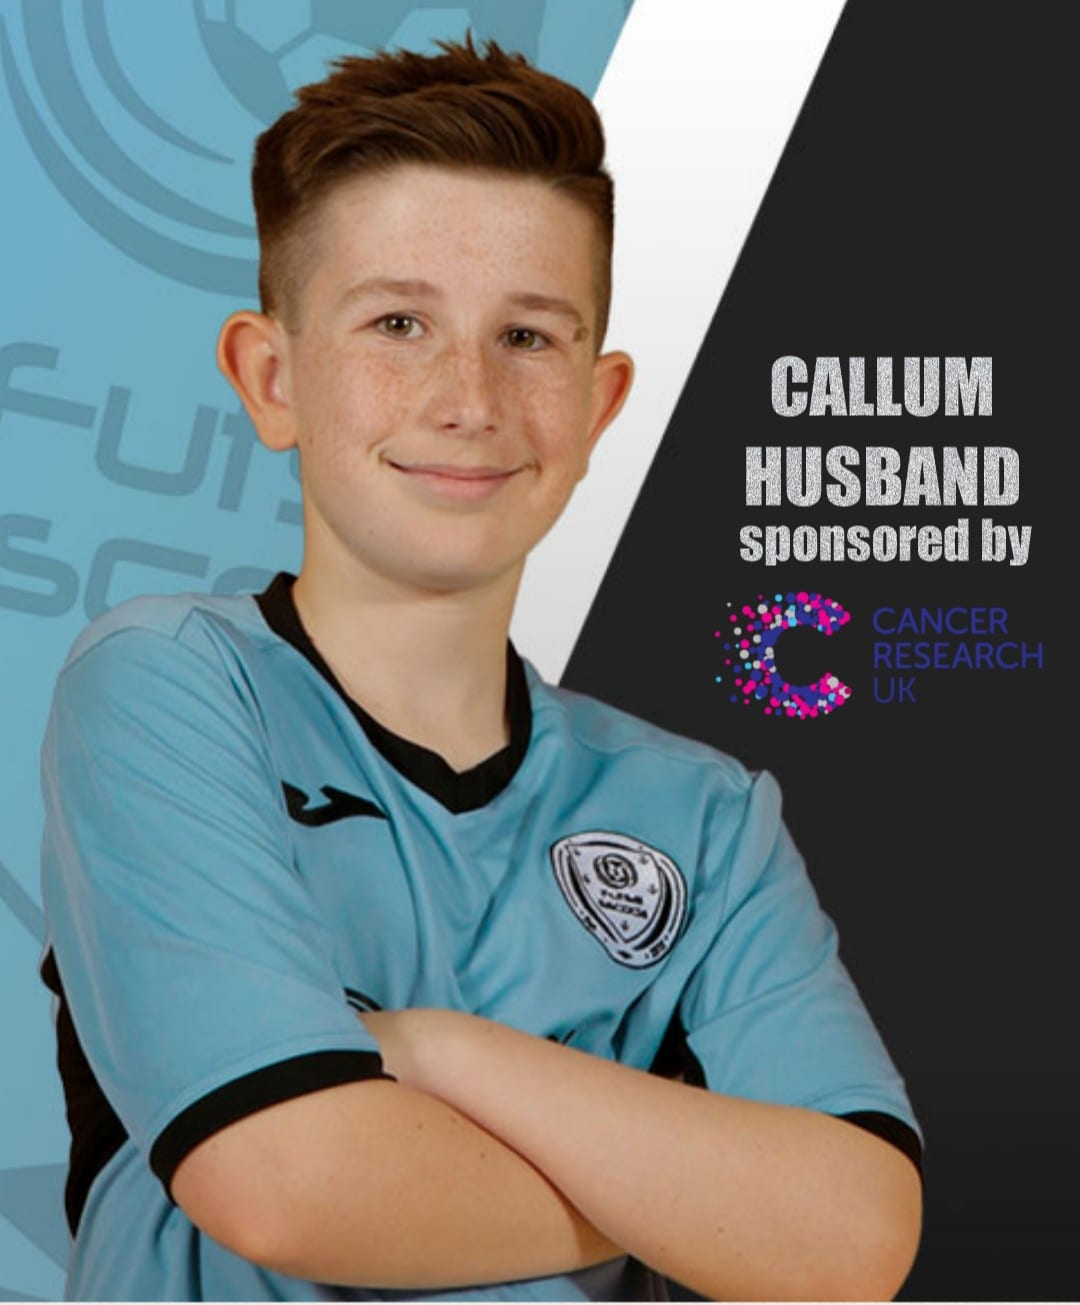 Callum Husband